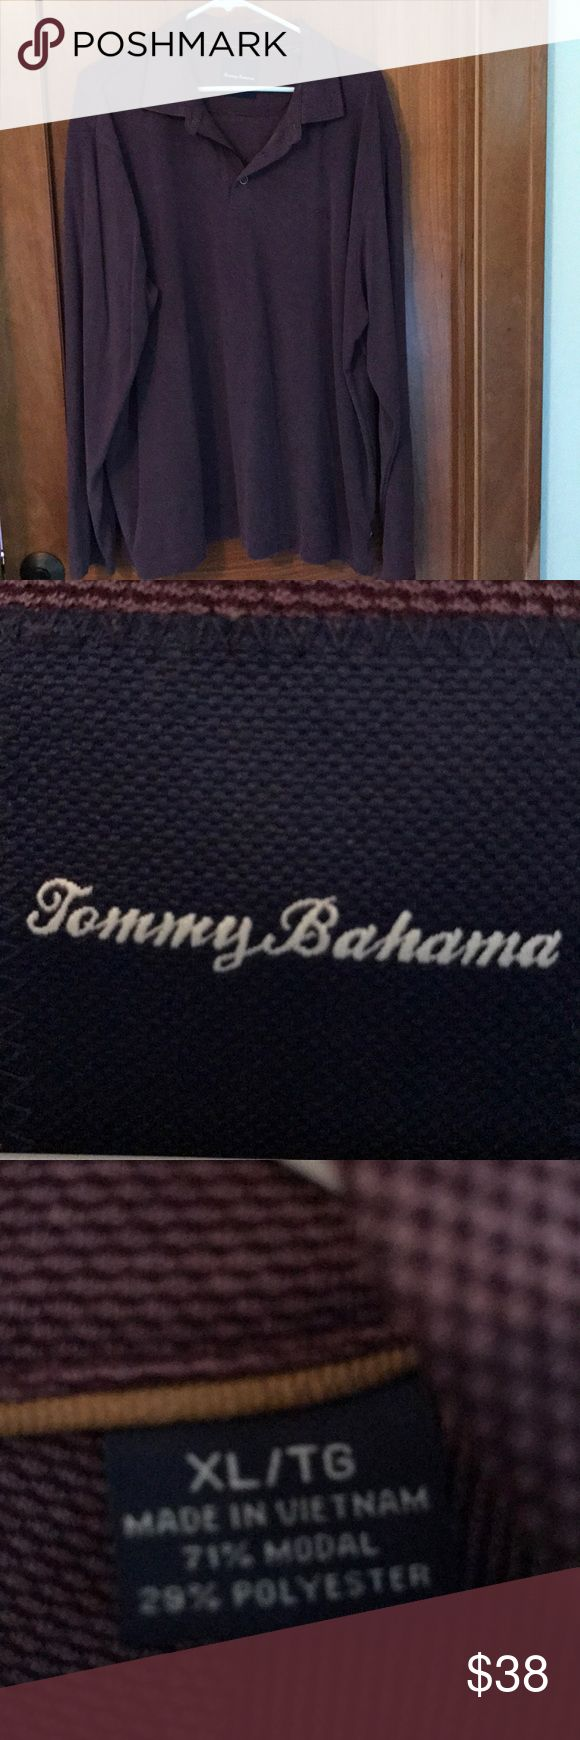 Tommy Bahama long sleeve polo shirt Tommy Bahama long sleeve polo shirt. Size XL. Purple/burgundy in color. Tommy Bahama Shirts Polos